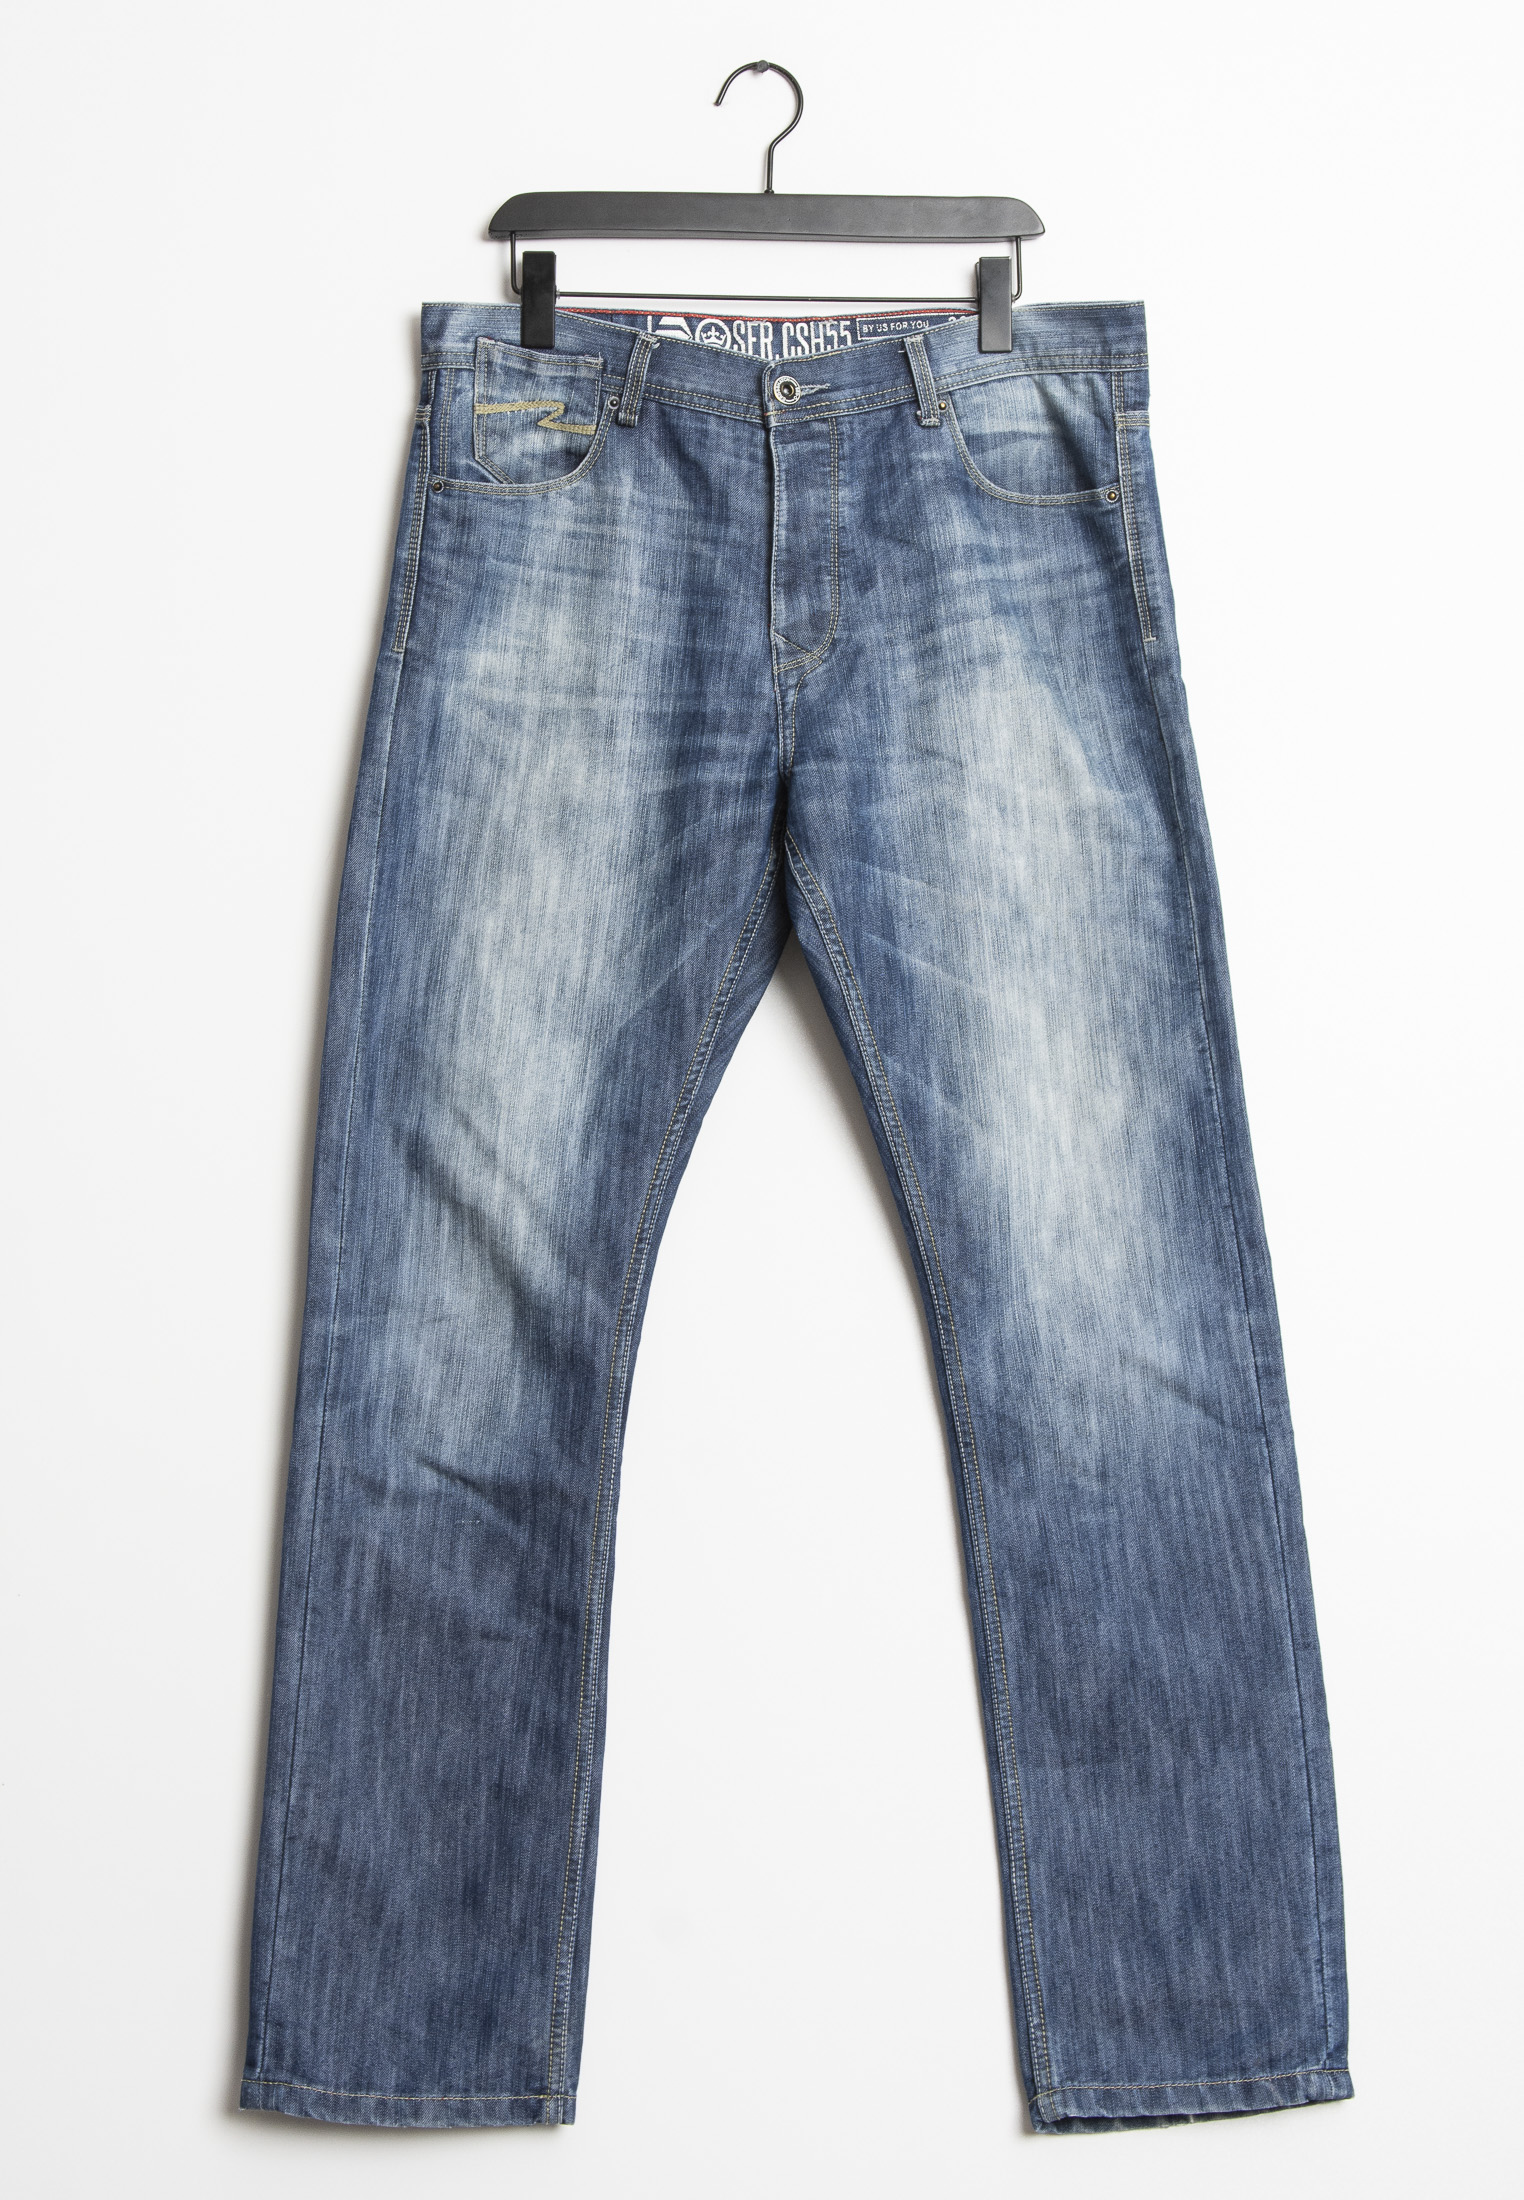 CROSSHATCH jeans, blå, 36